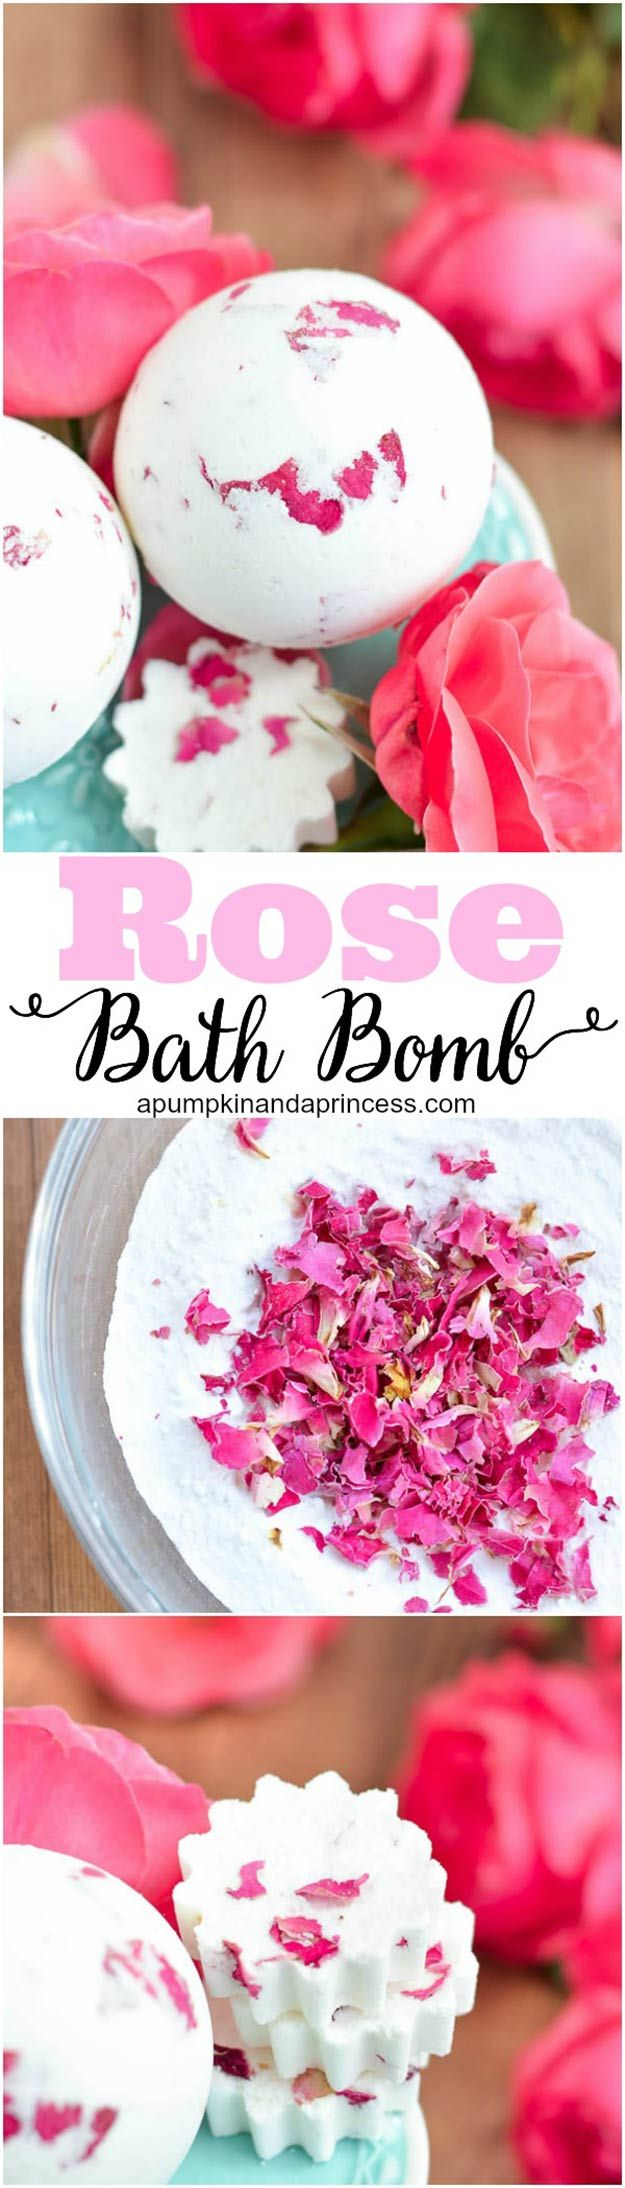 Bathbombs are a great way to relax and unwind at the end of a stressful and exhausting day! But all of my bath lovers out there knows how pricey it can be to buy a bath bomb every time you… Continue Reading →